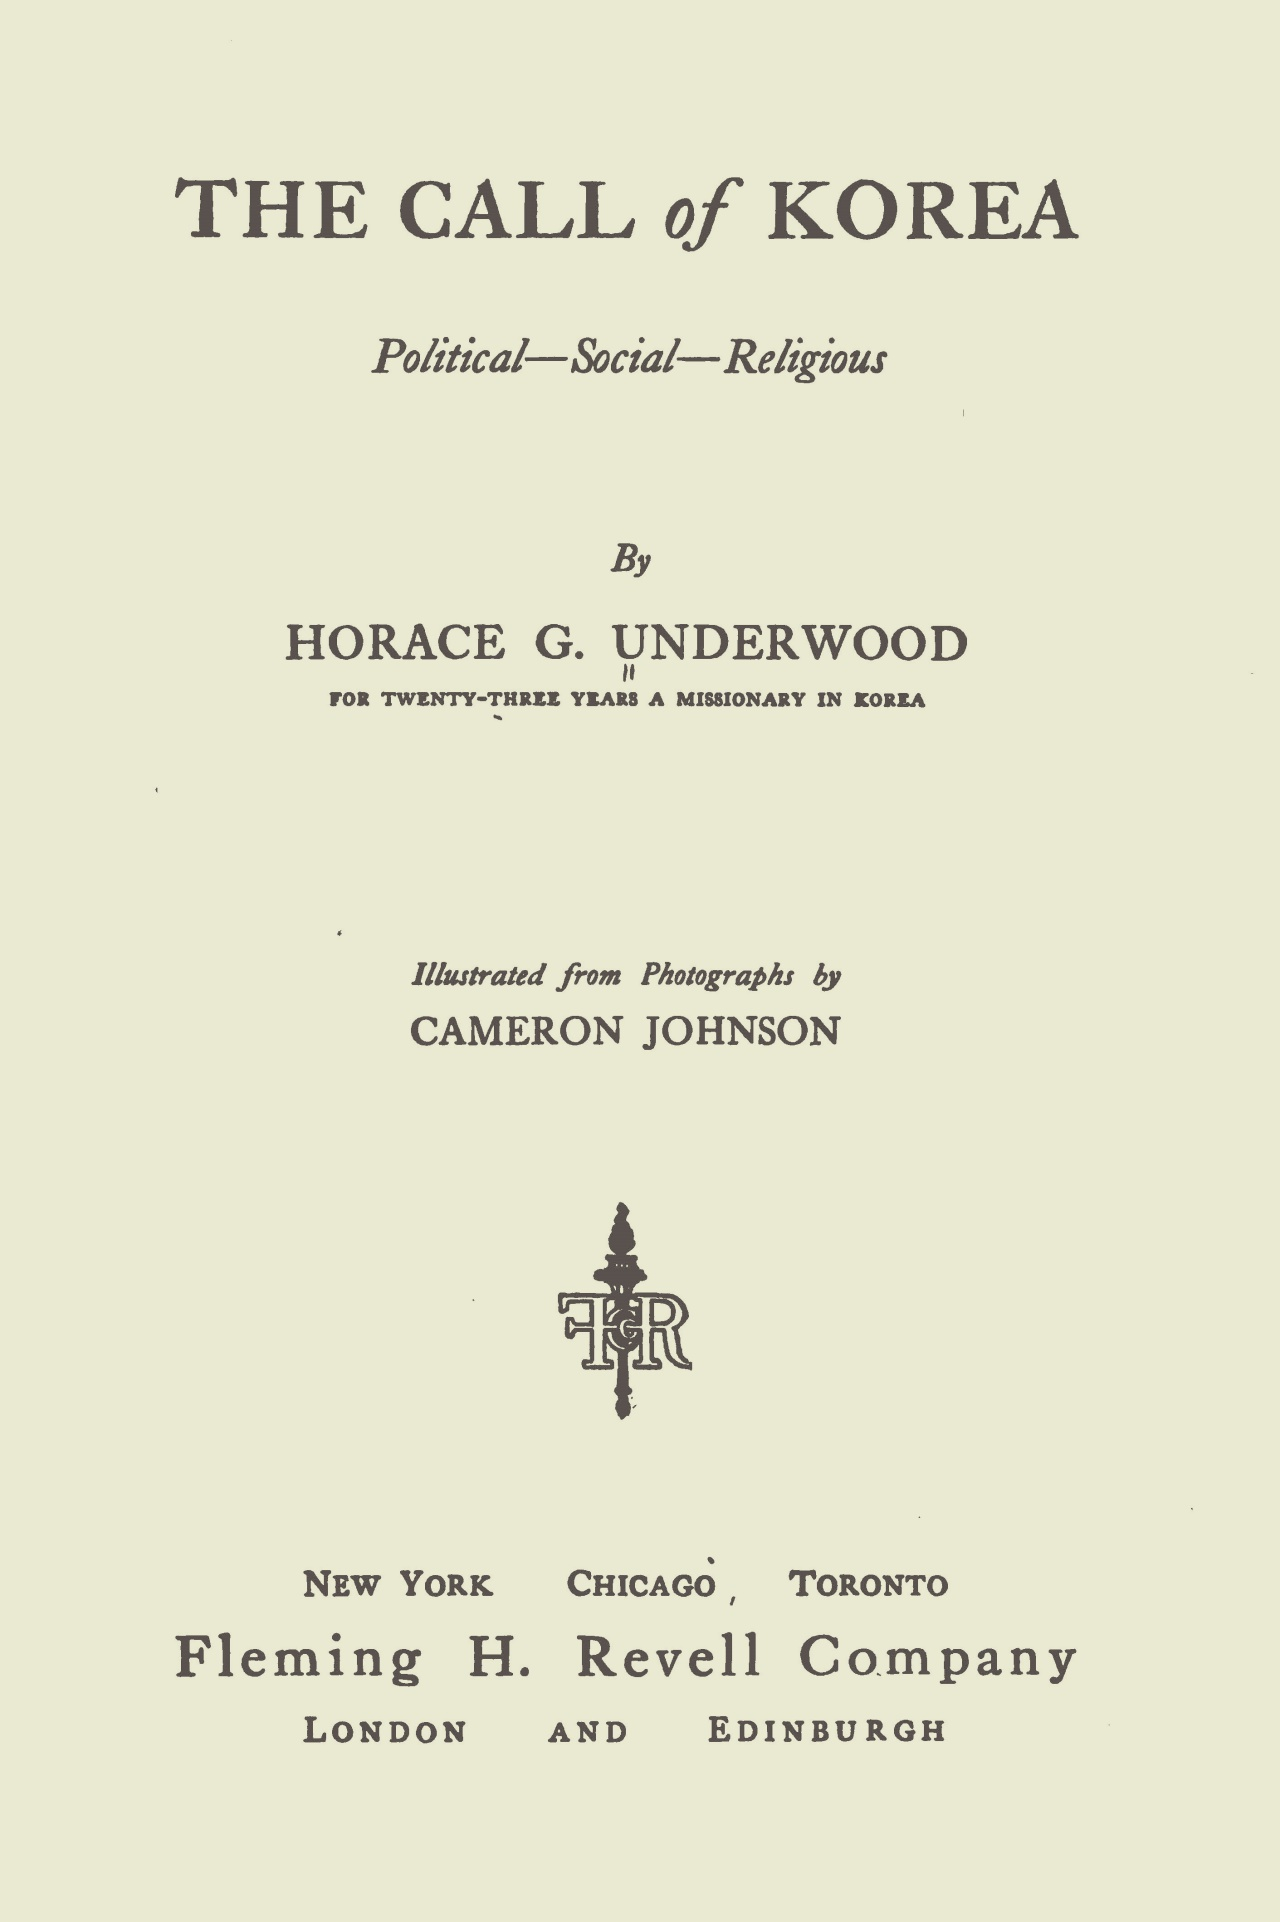 Underwood, Horace Grant, The Call of Korea Title Page.jpg